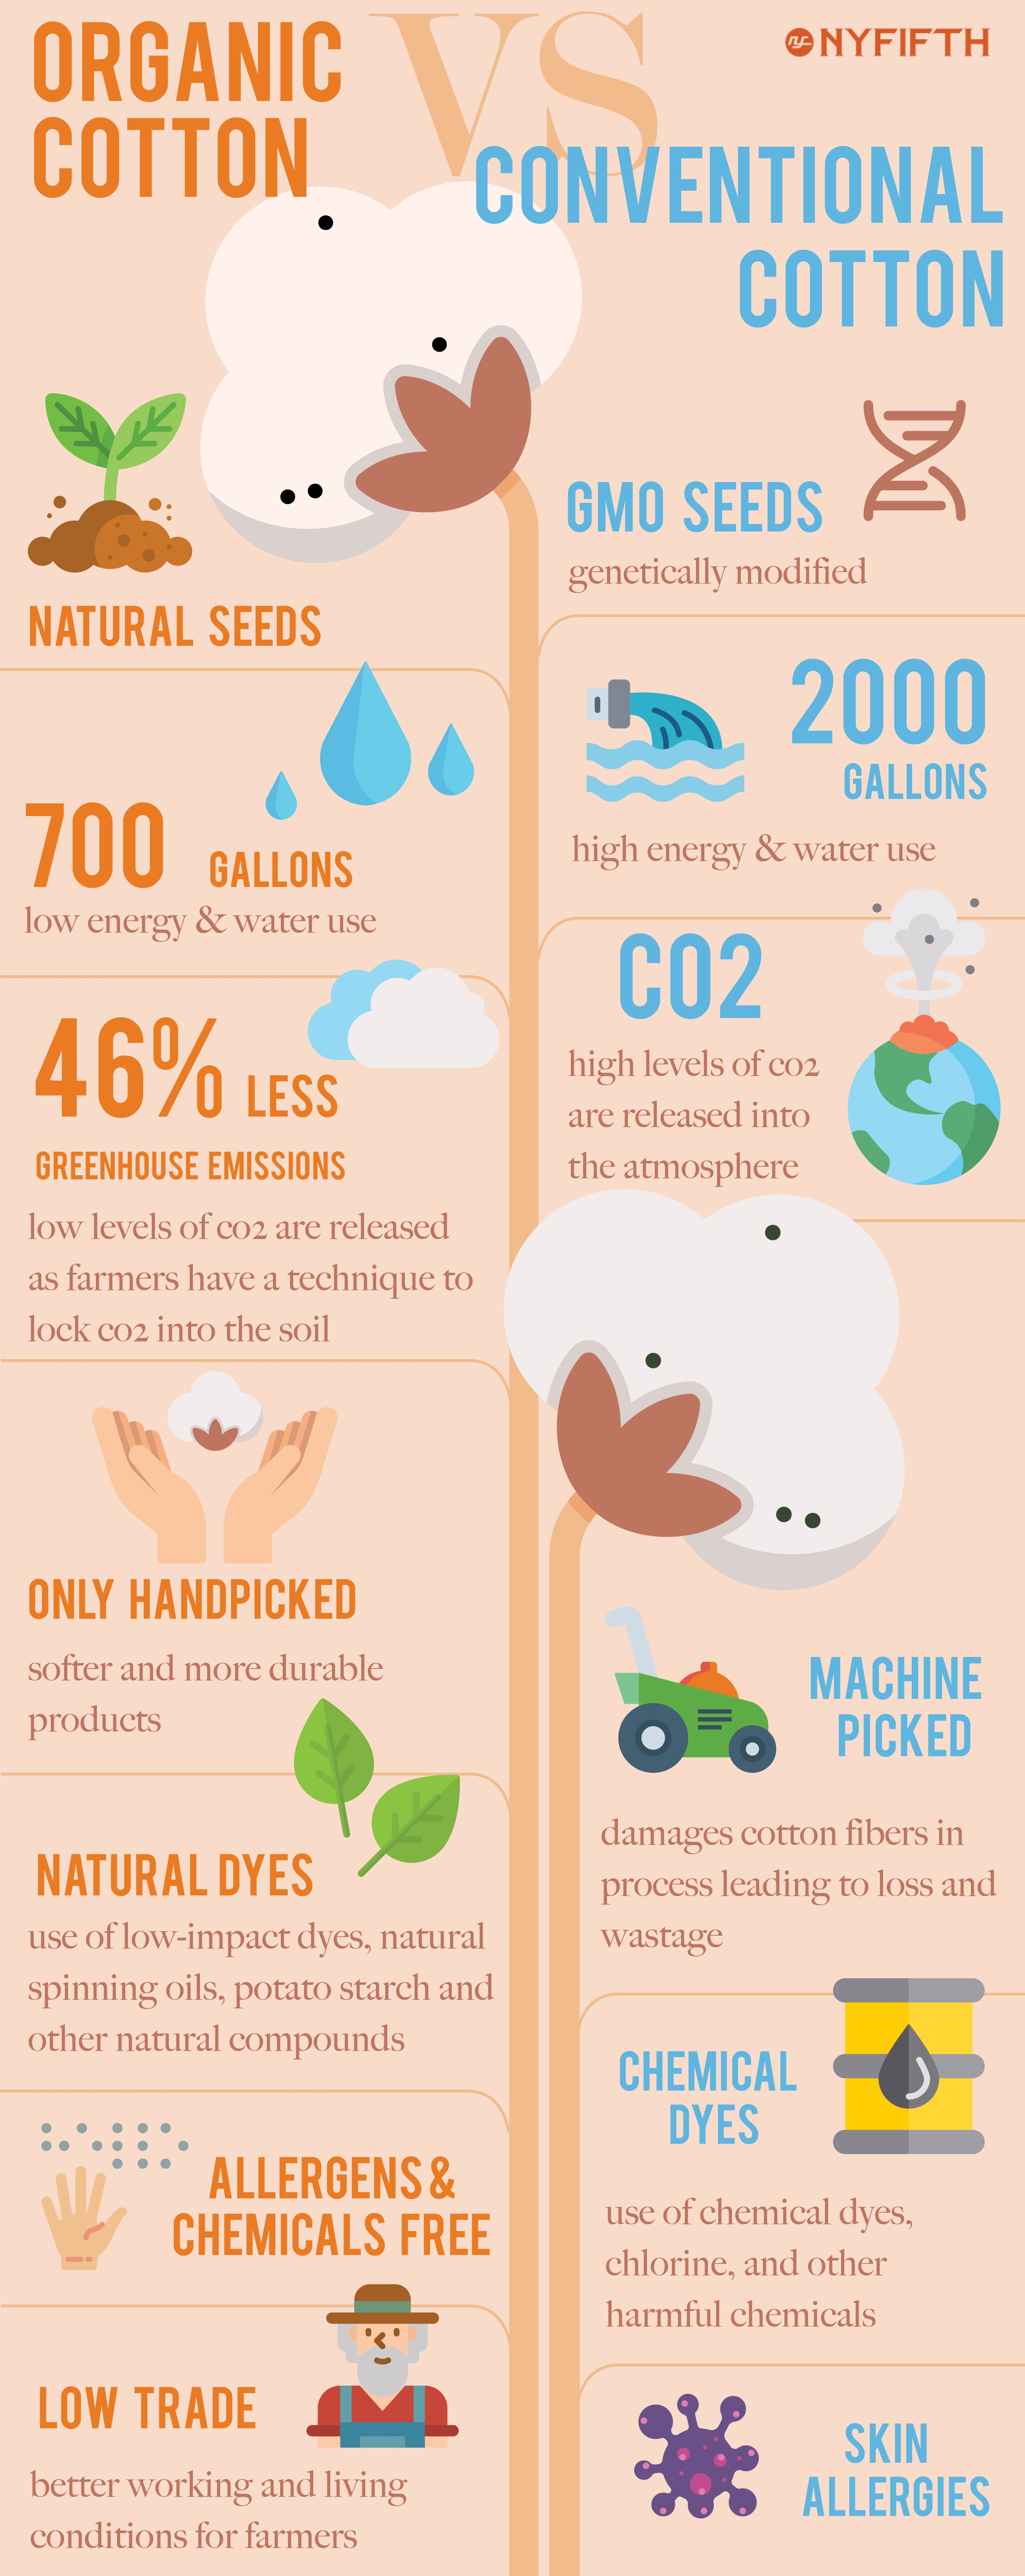 Earth Day 2019: Conventional Cotton vs Organic Cotton